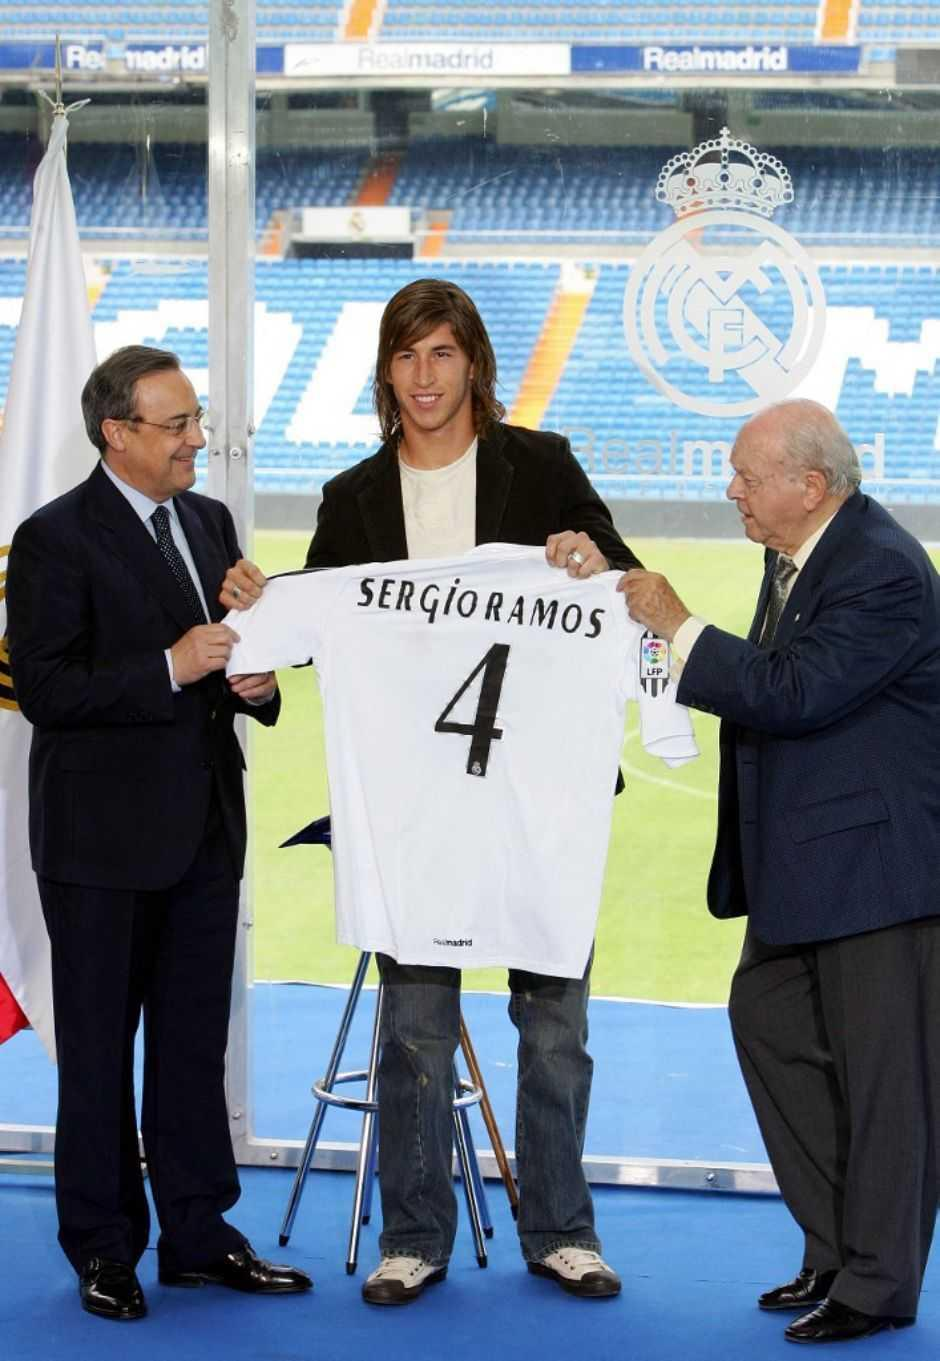 Real Madrid's president Florentino Perez (L) stands with new Spanish signing Sergio Ramos (C) and former Real Madrid player Alberto di Stefano as he is presented to the press at the Santiago Bernabeu stadium in Madrid, 08 September 2005. Ramos, formerly of Spanish club Seville was bought out of his contract for 27 million euros. The Ramos deal brings Real's summer spending on new players to 90 million euros.AFP PHOTO/PHILIPPE DESMAZES (Photo by PHILIPPE DESMAZES / AFP)